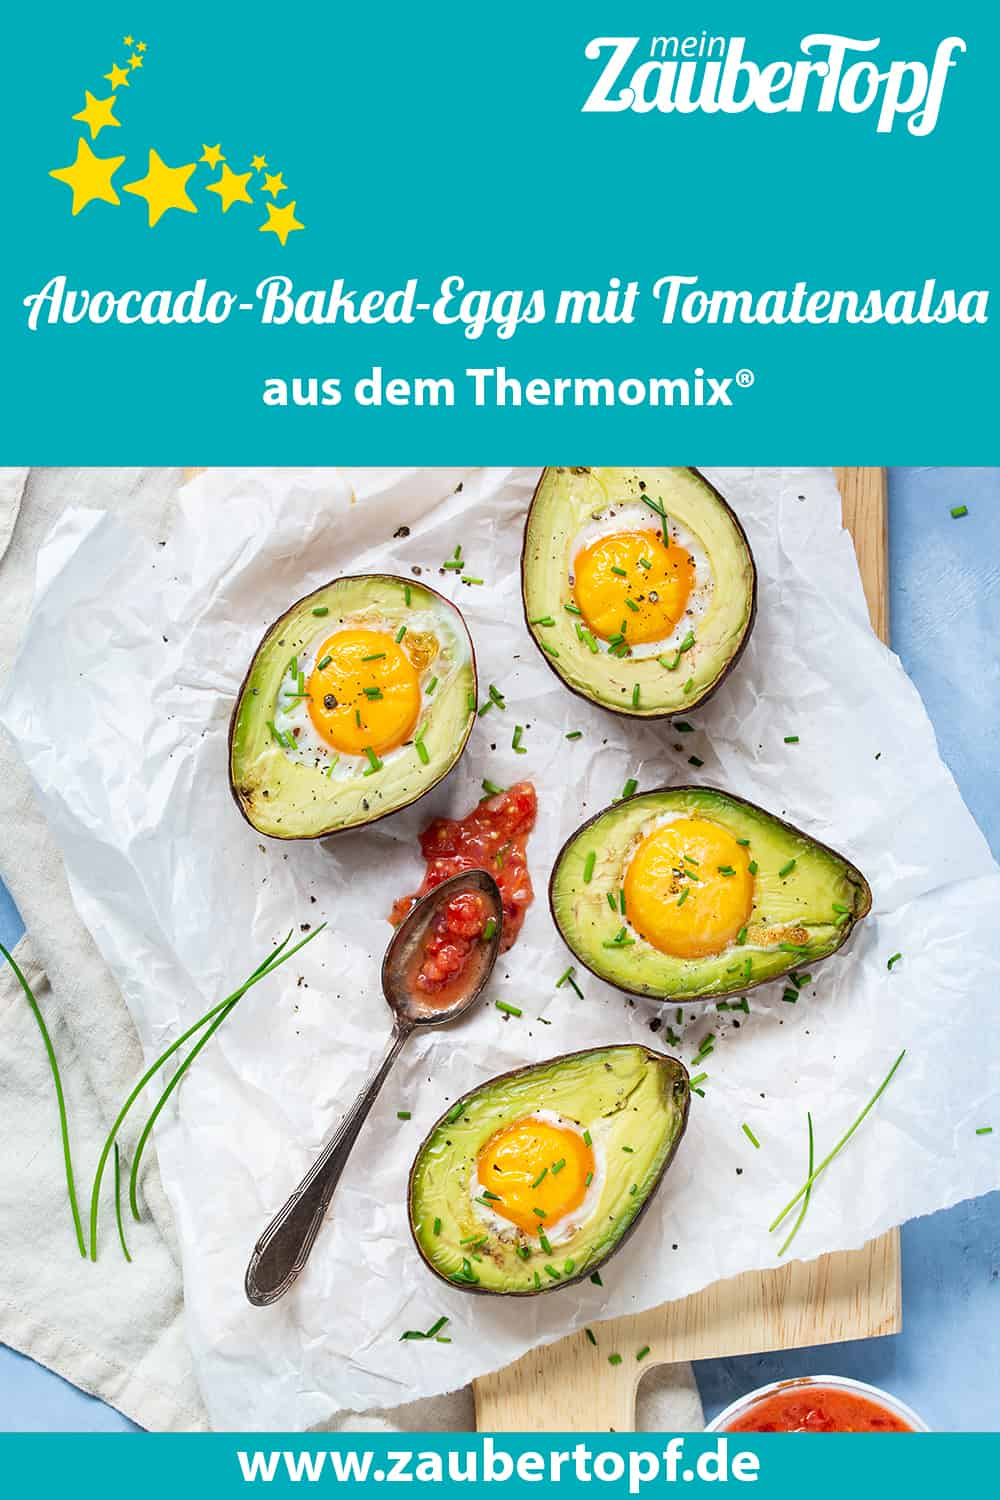 Avocado-Baked-Eggs mit dem Thermomix® –Foto: Kathrin Knoll